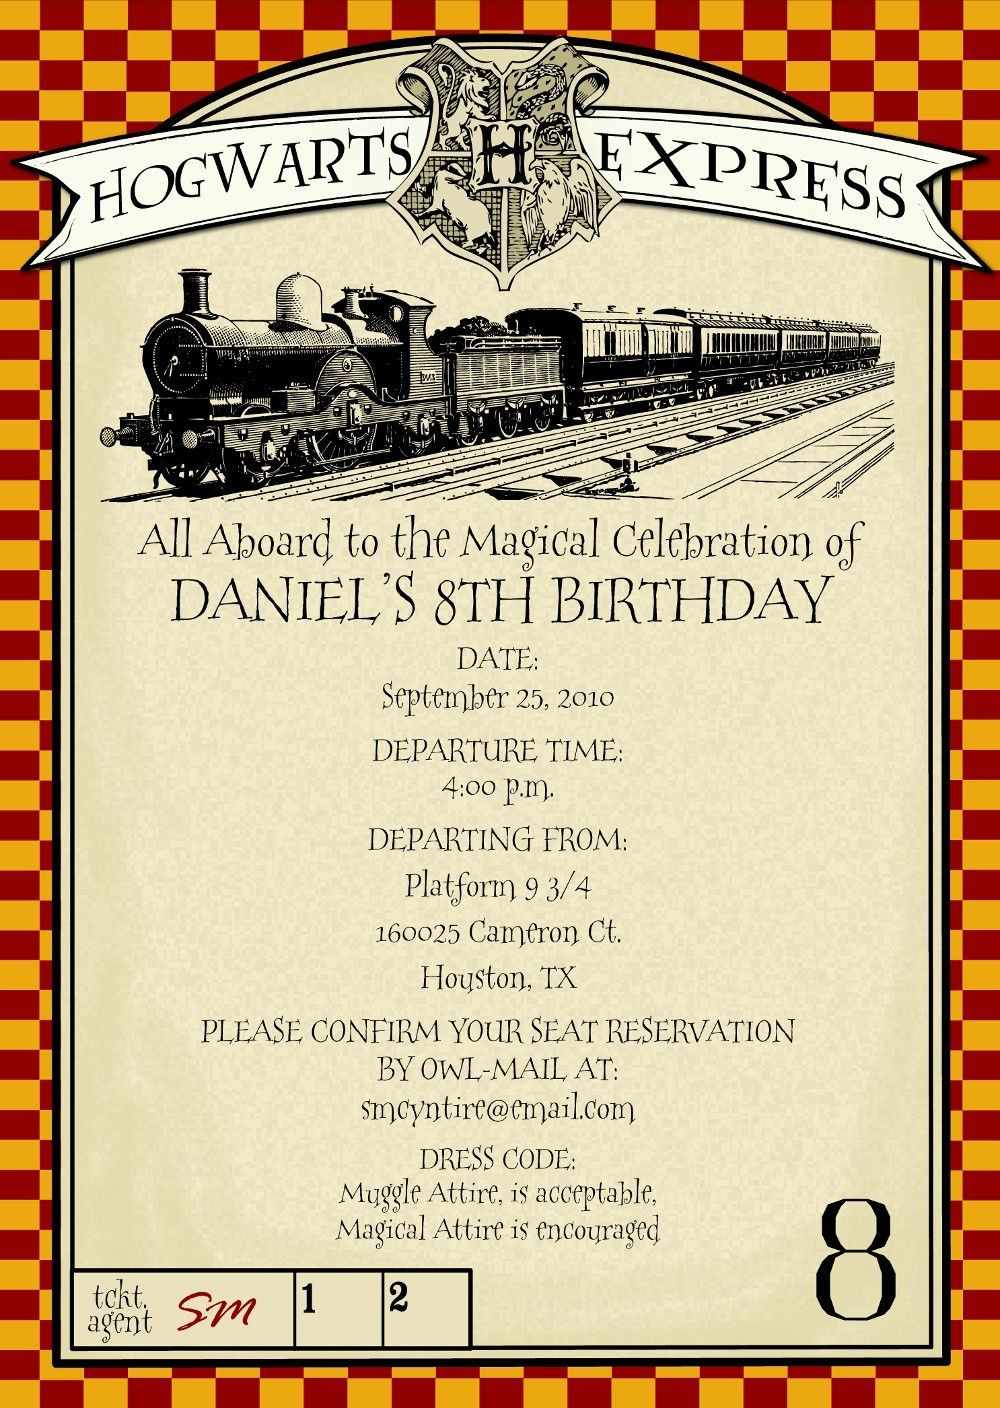 Harry Potter Party Invitations Free Printable | Harry Potter - Harry Potter Birthday Invitations Free Printable